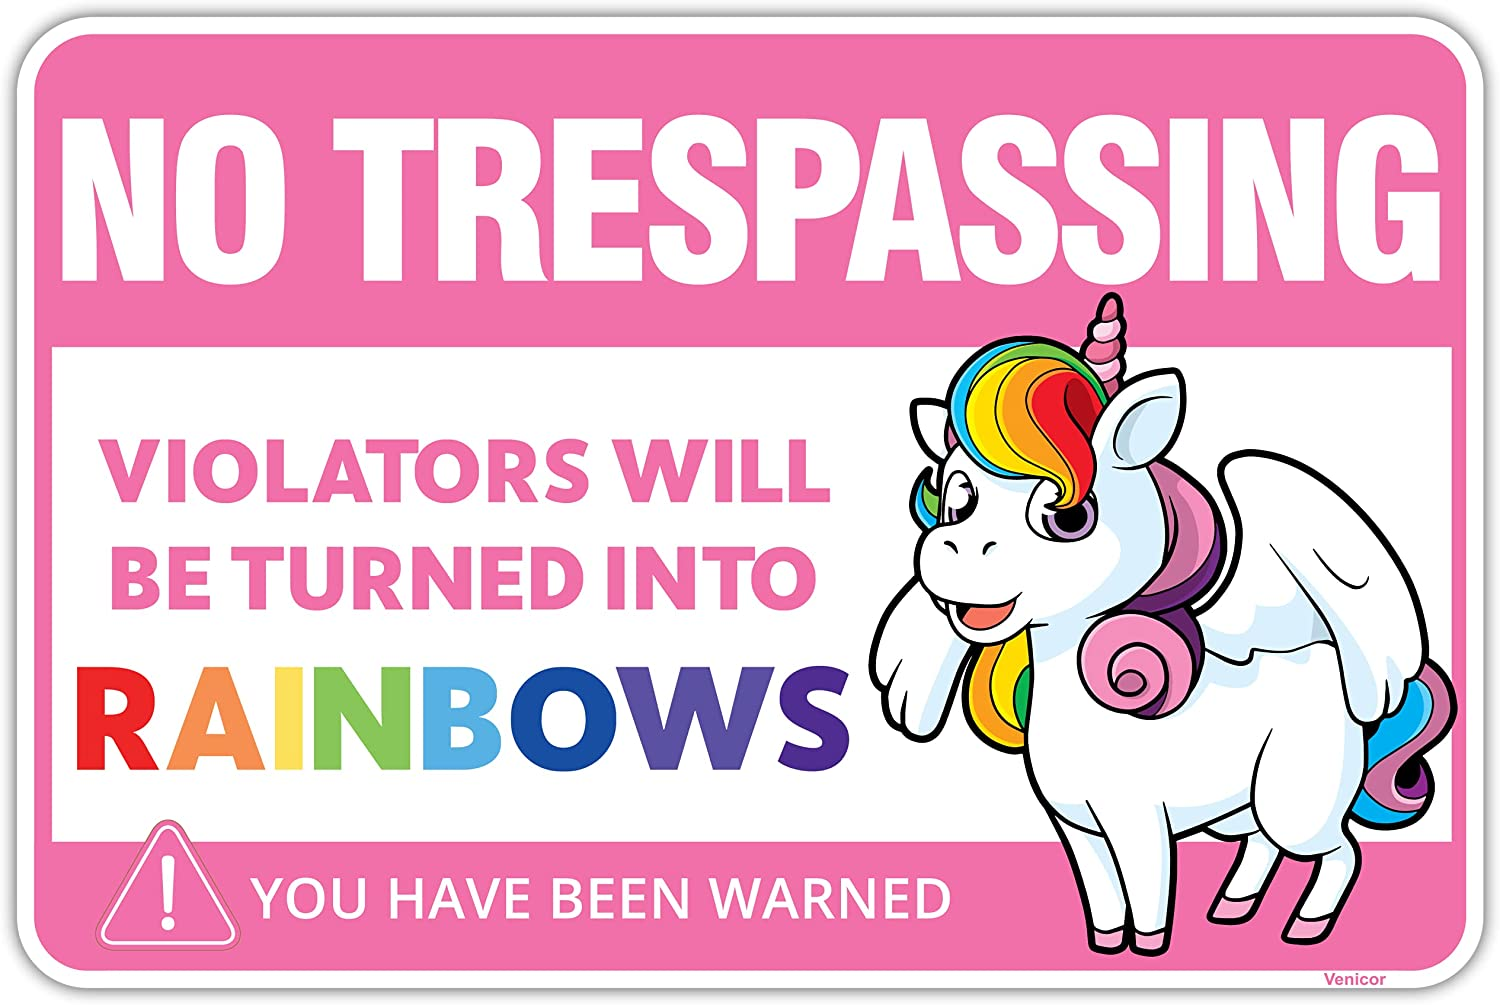 Venicor Unicorn Sign - 8x12 Inches - Aluminum - Unicorn Pictures Wall Decor Bedroom Accessories - Unicorn Poster for Girls Room - Unicorn Teen Girl Lover Gifts Rainbow Wallpaper Stickers Theme Stuff